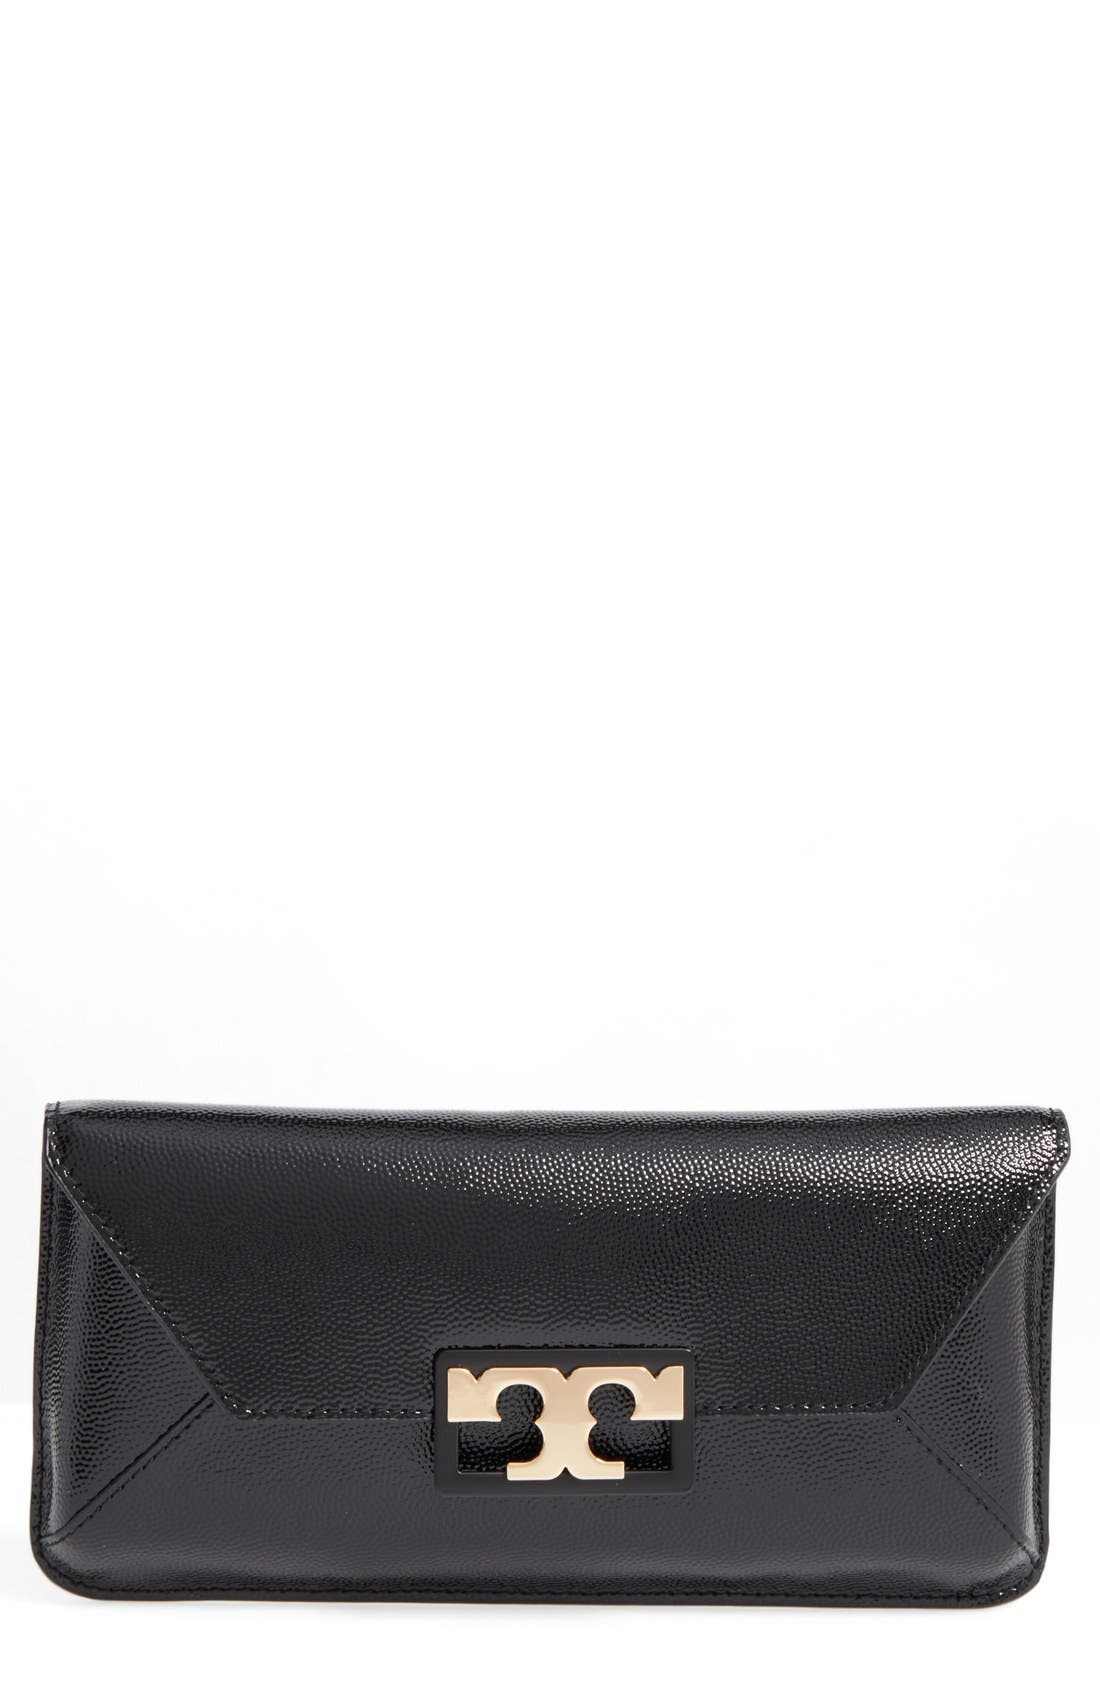 Alternate Image 1 Selected - Tory Burch Gigi Caviar Leather Clutch